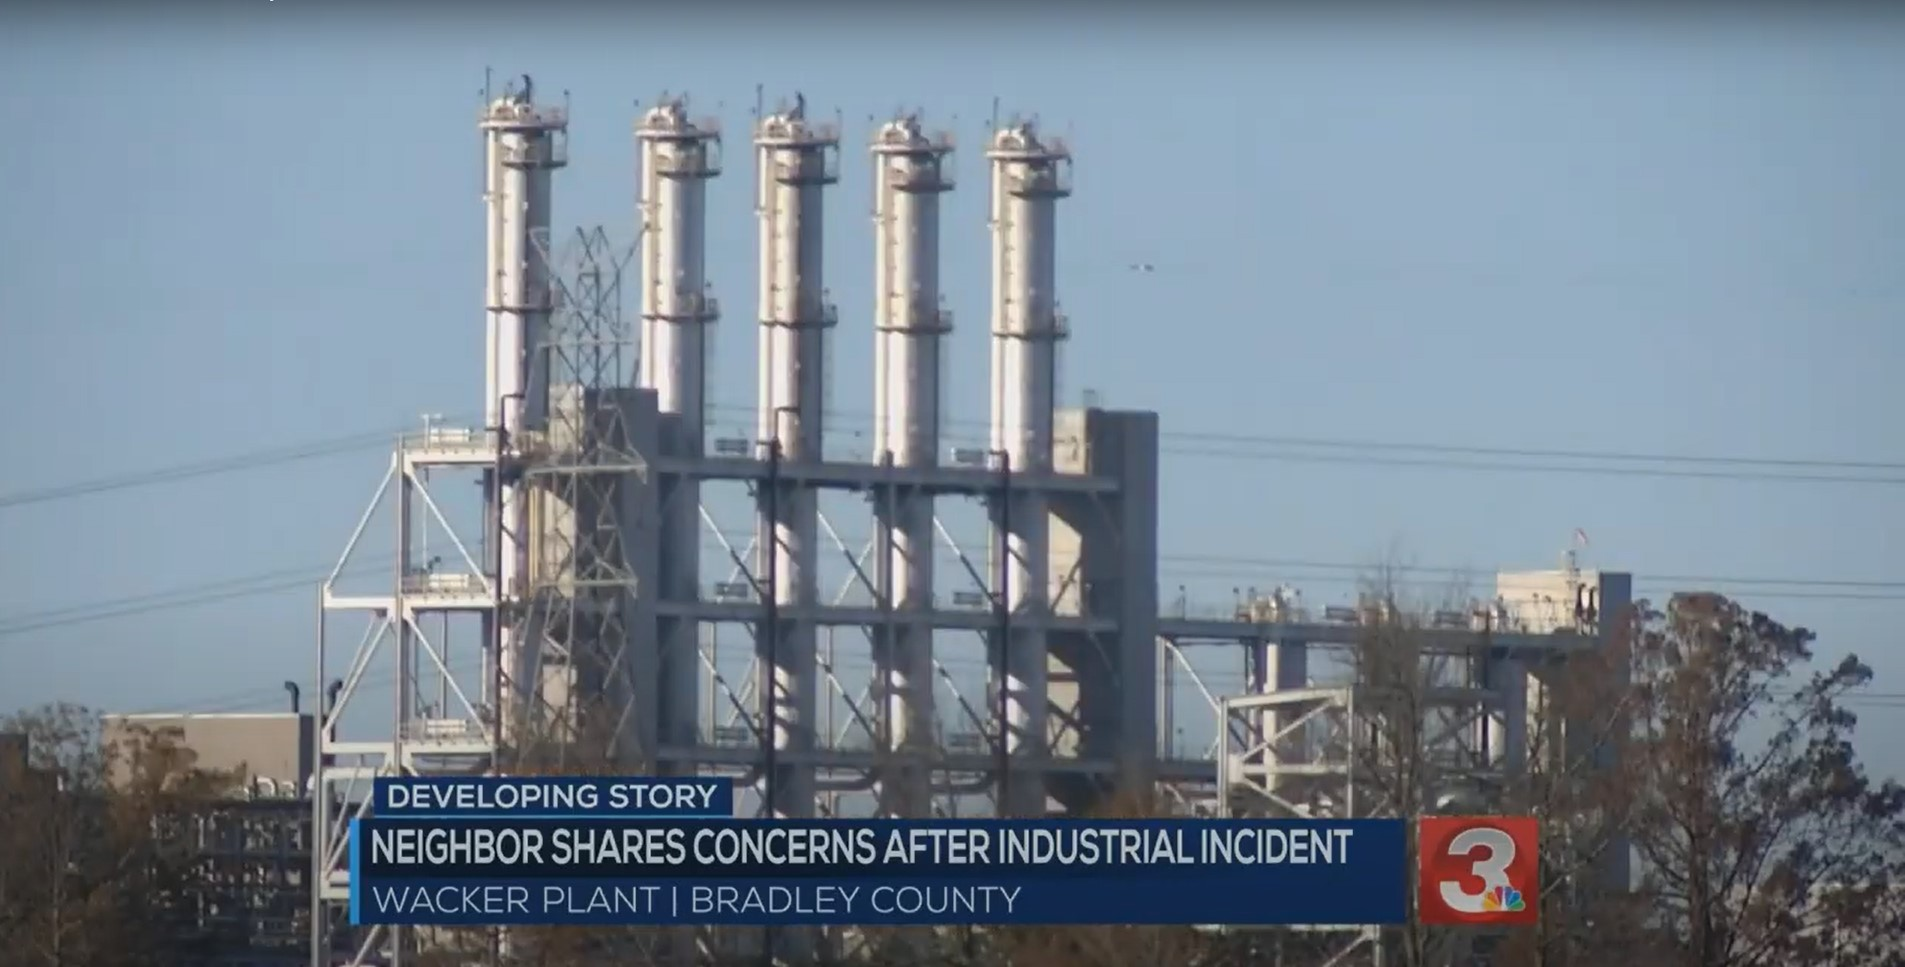 1 Dead, 3 Injured in Tennessee Chemical Plant Accident